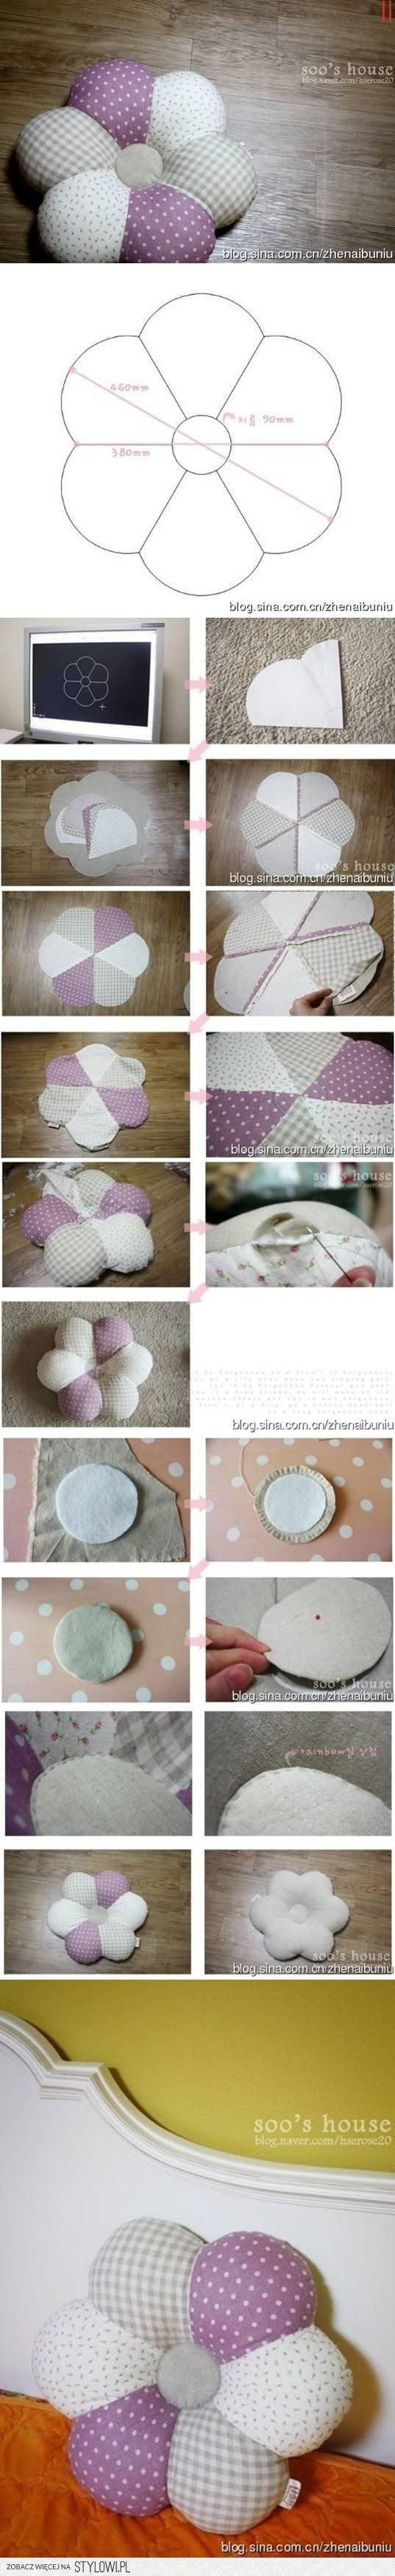 2408 best pincushions images on pinterest